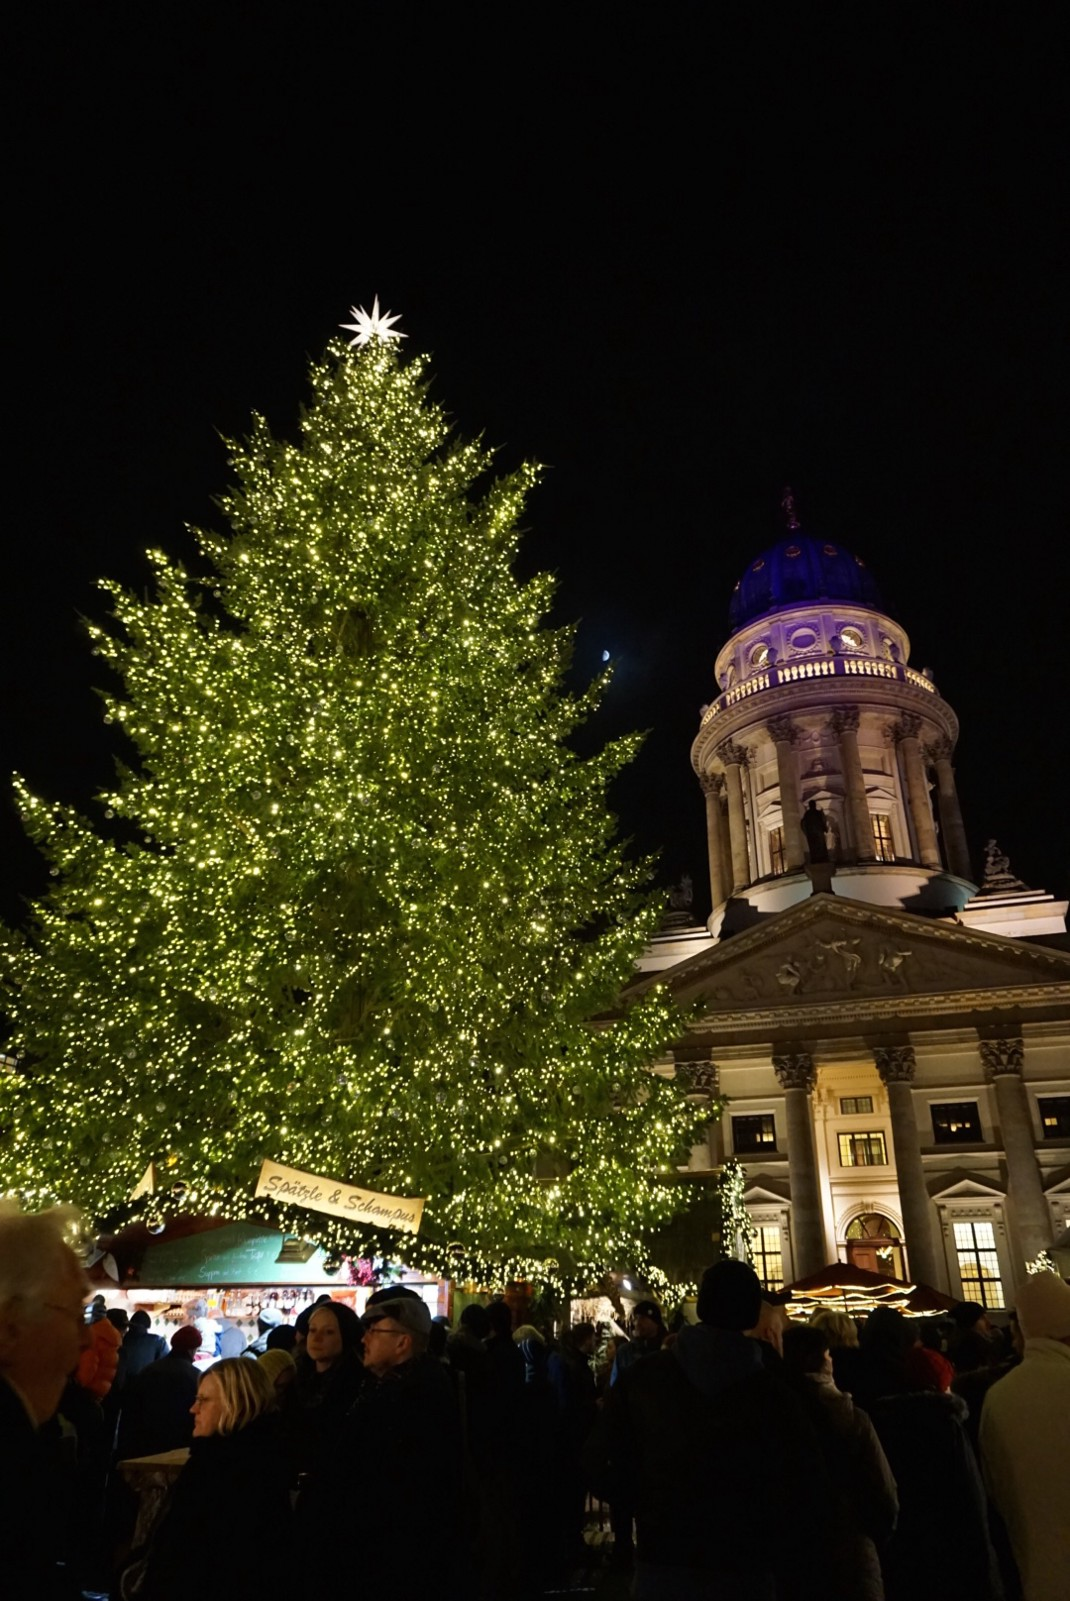 Gendermanmarkt berlin christmas tree